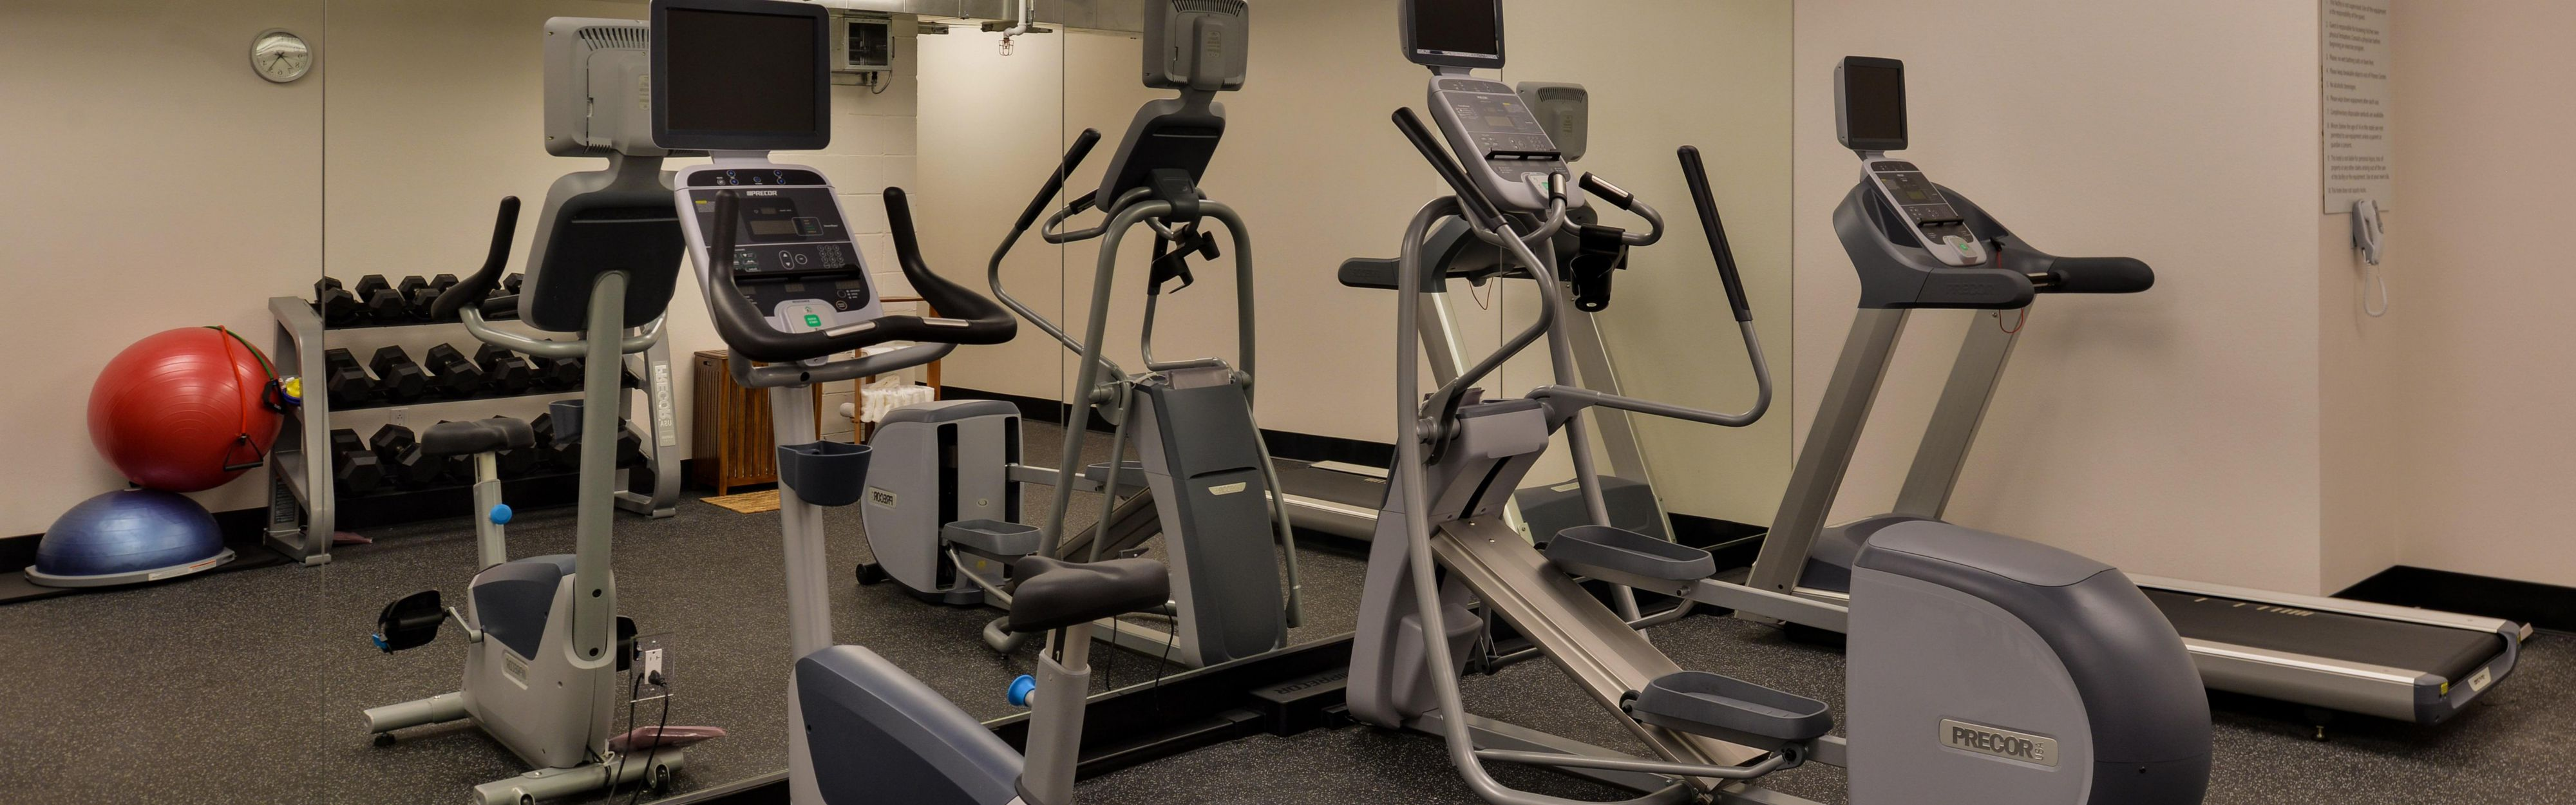 Holiday Inn Express & Suites San Diego - Mission Valley image 2